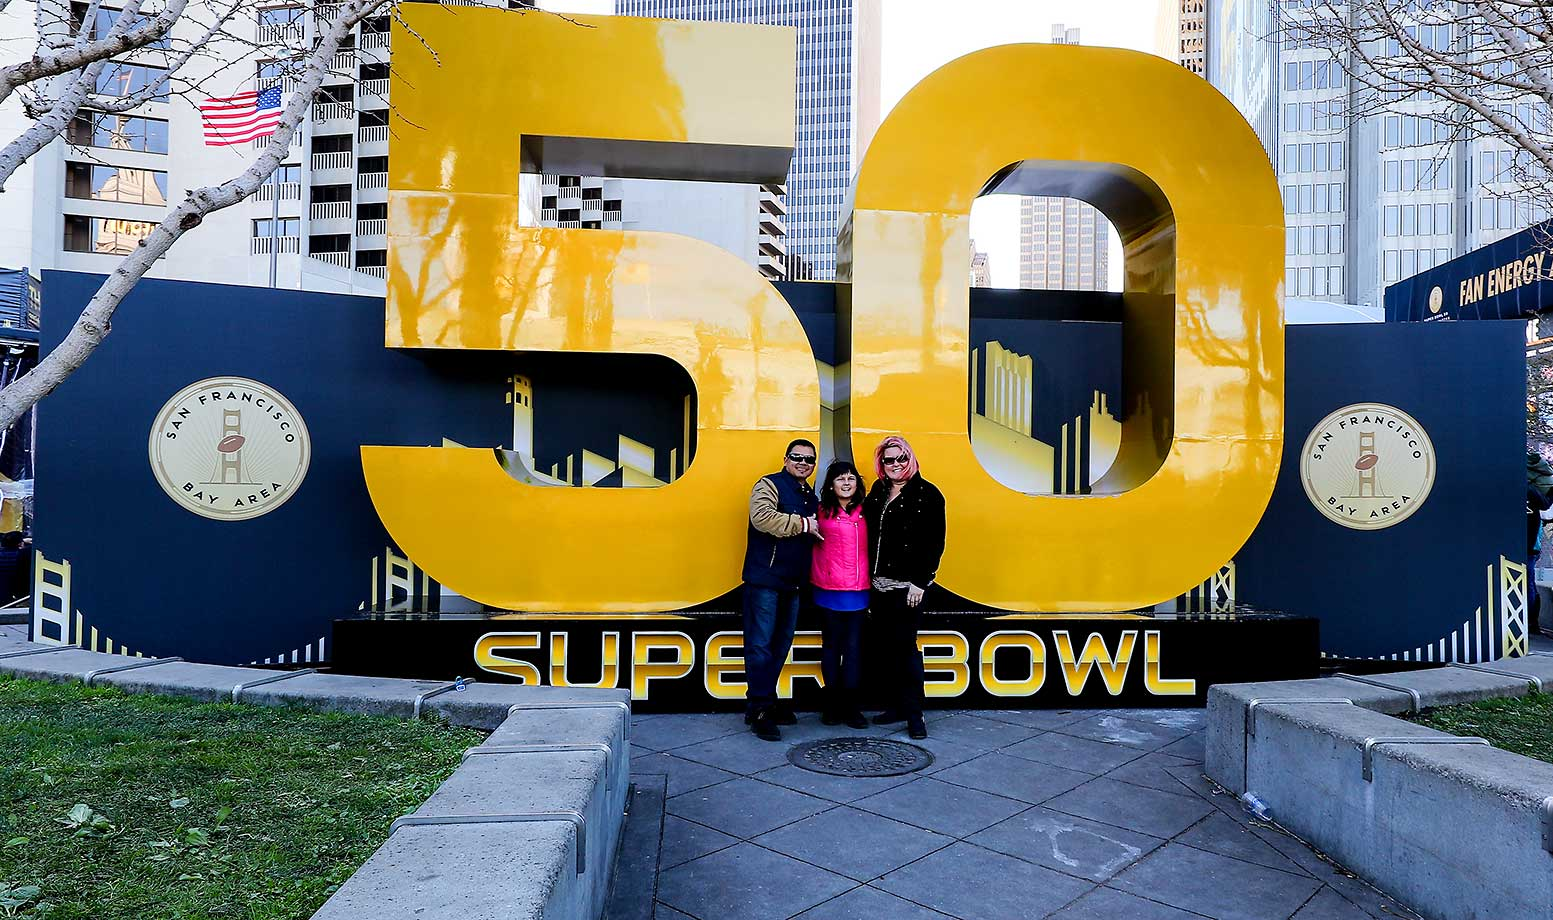 Fans pose for photo's in front of the Super Bowl 50 Logo in Super Bowl City.